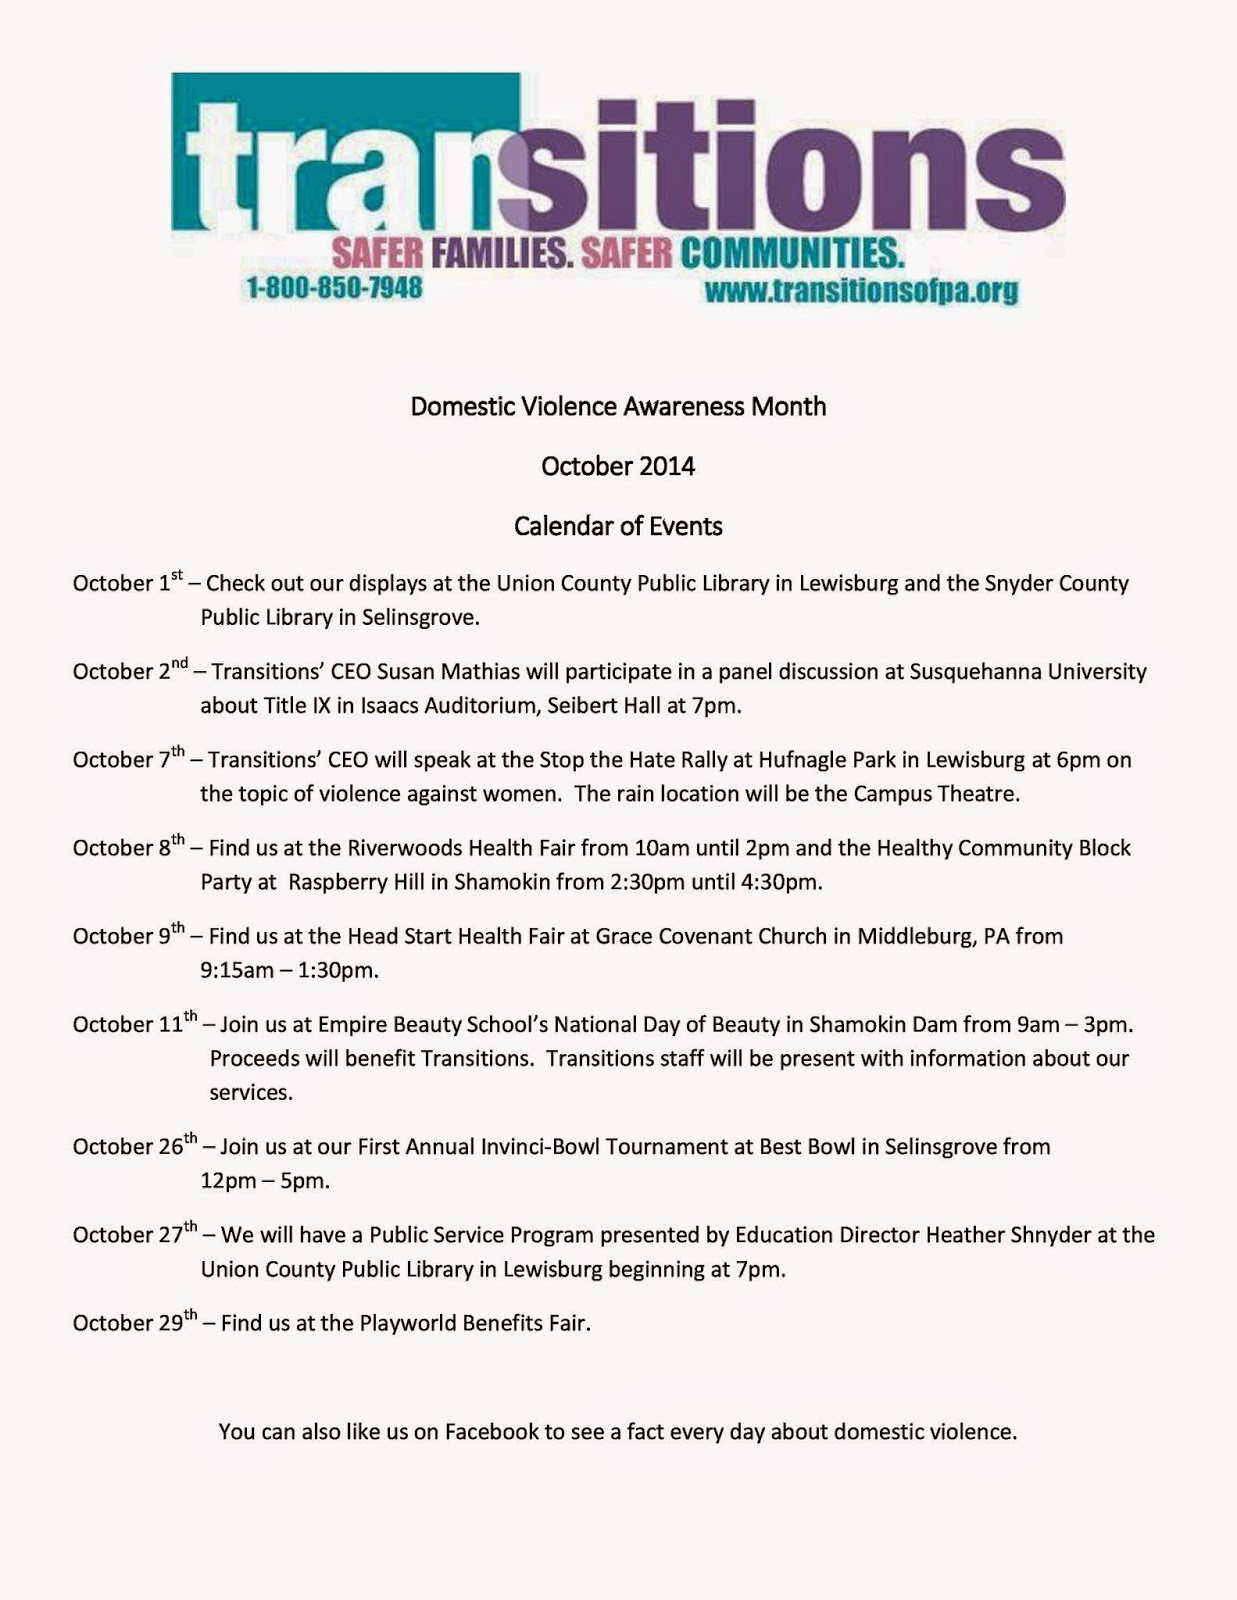 Transitioning Times Overview Of Domestic Violence